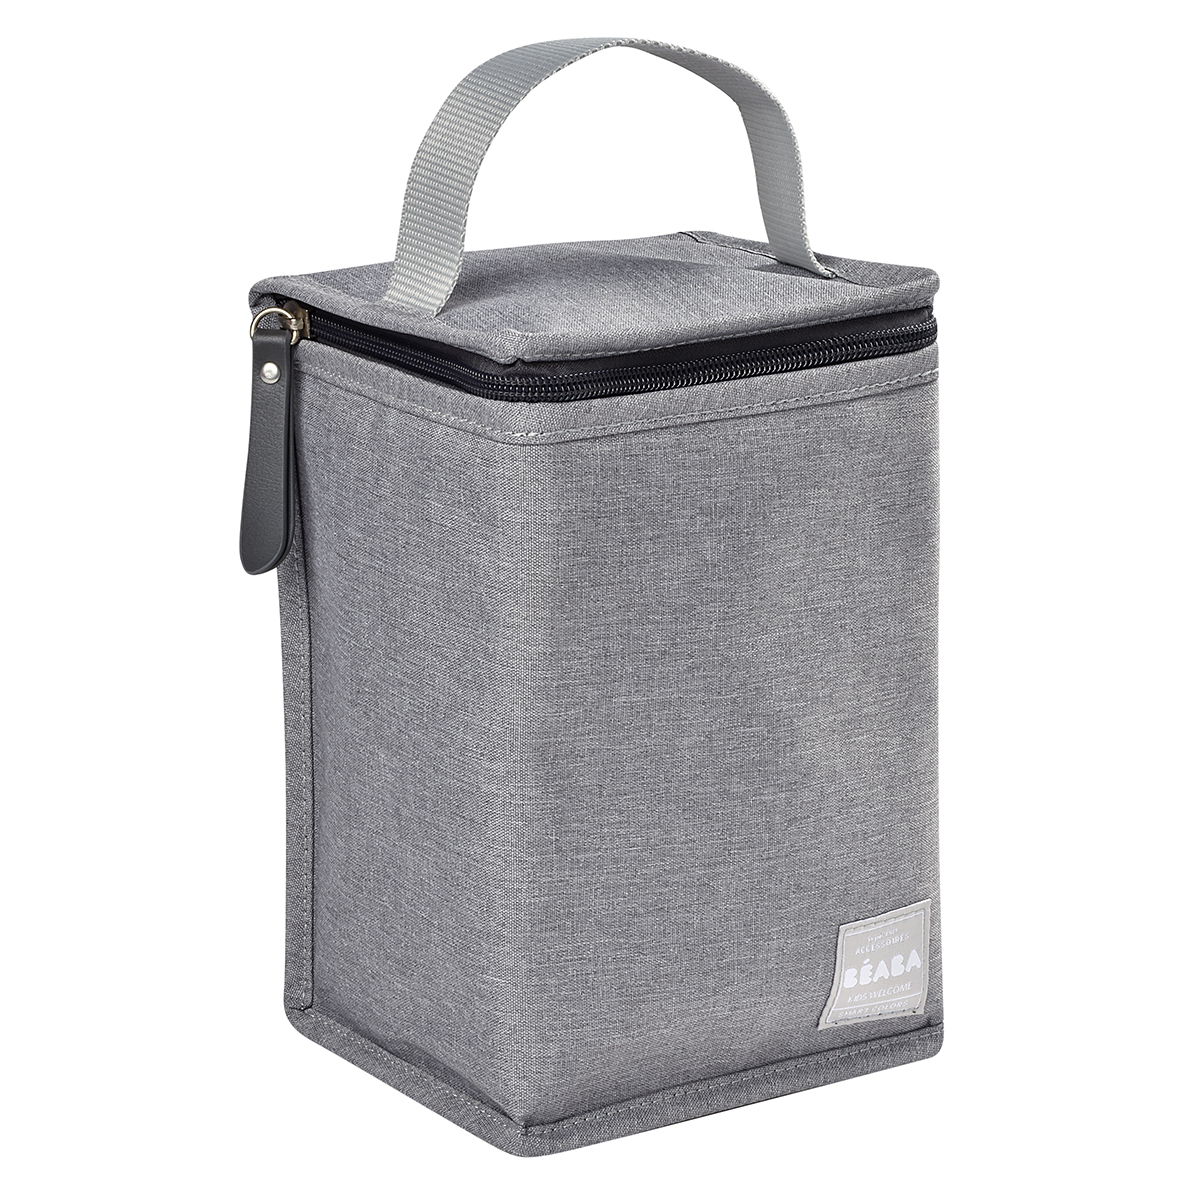 Sac isotherme Pochette Repas Isotherme - Heather Grey Pochette Repas Isotherme - Heather Grey